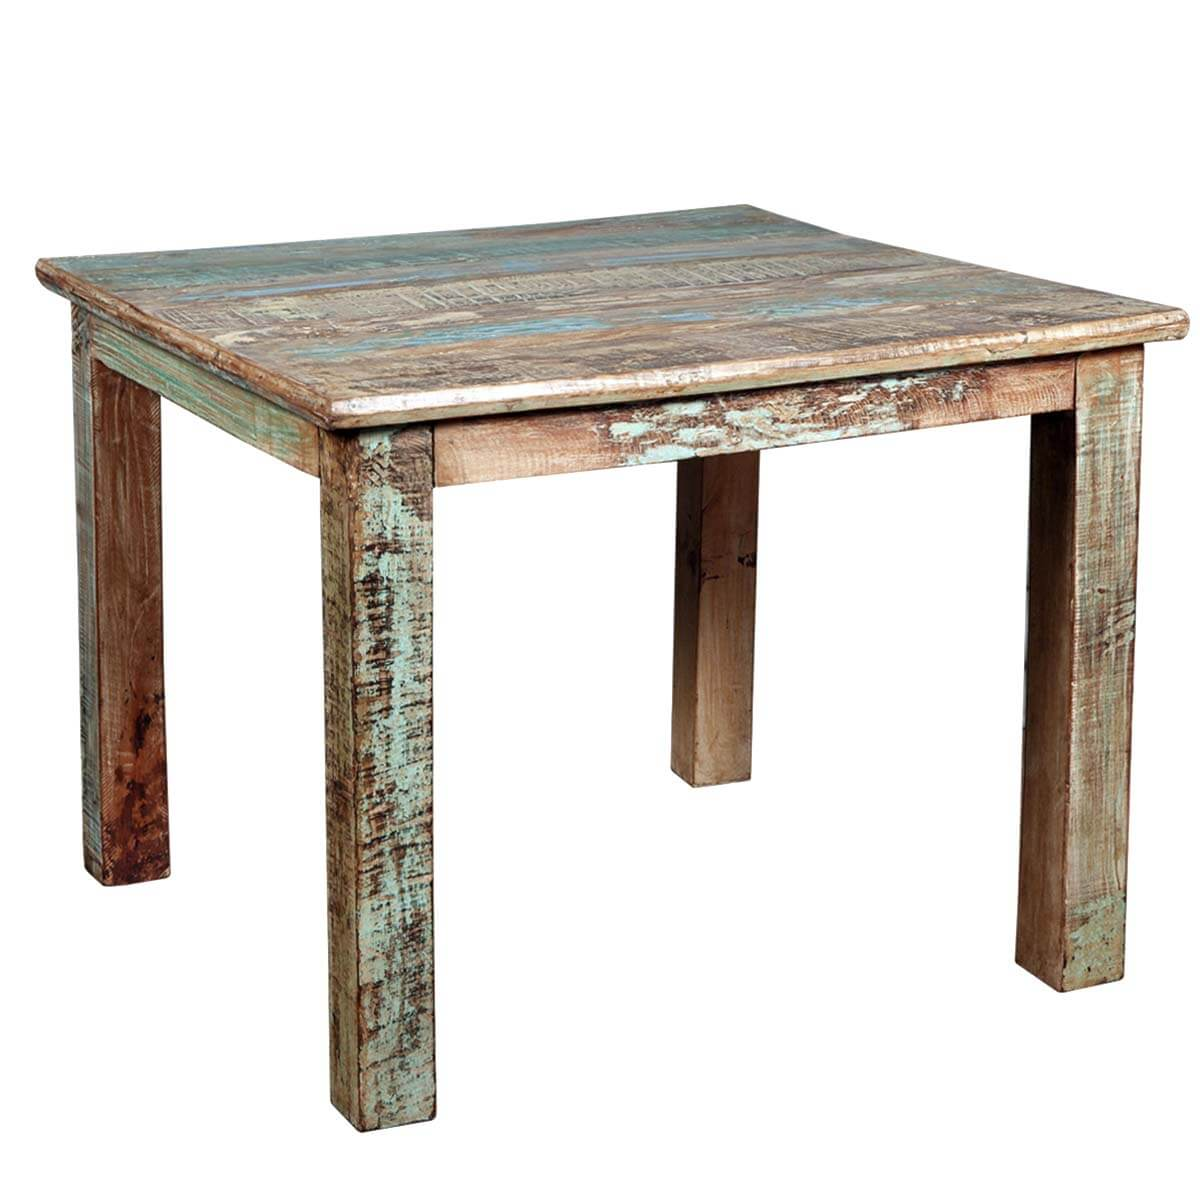 Small Wooden Tables ~ Rustic reclaimed wood distressed small kitchen dining table